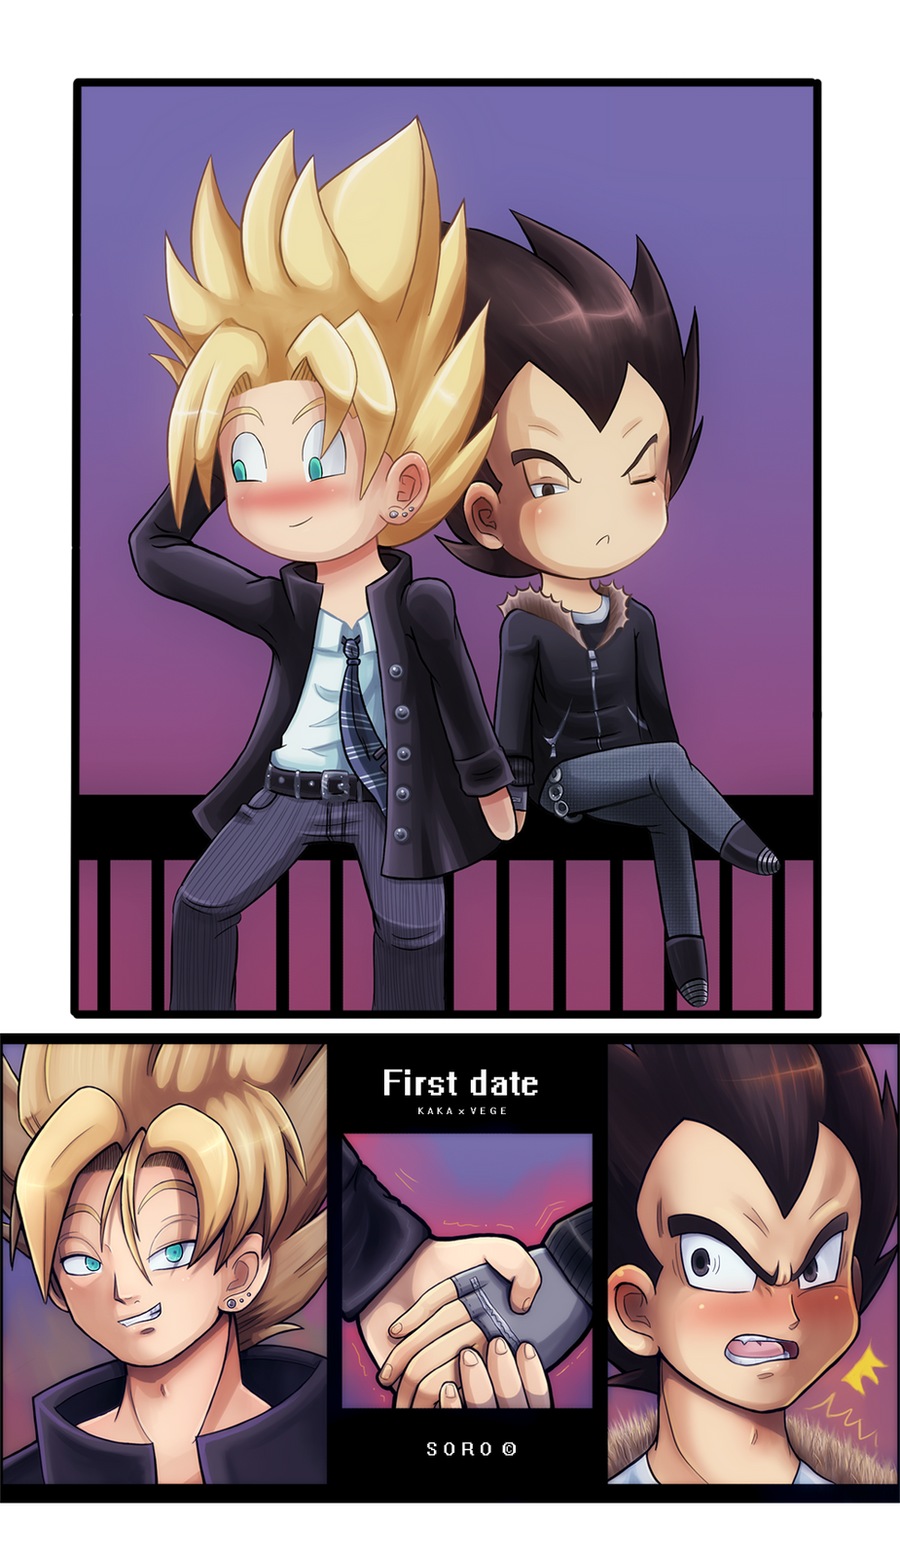 Anime First Date First Date by Mosaicvirus